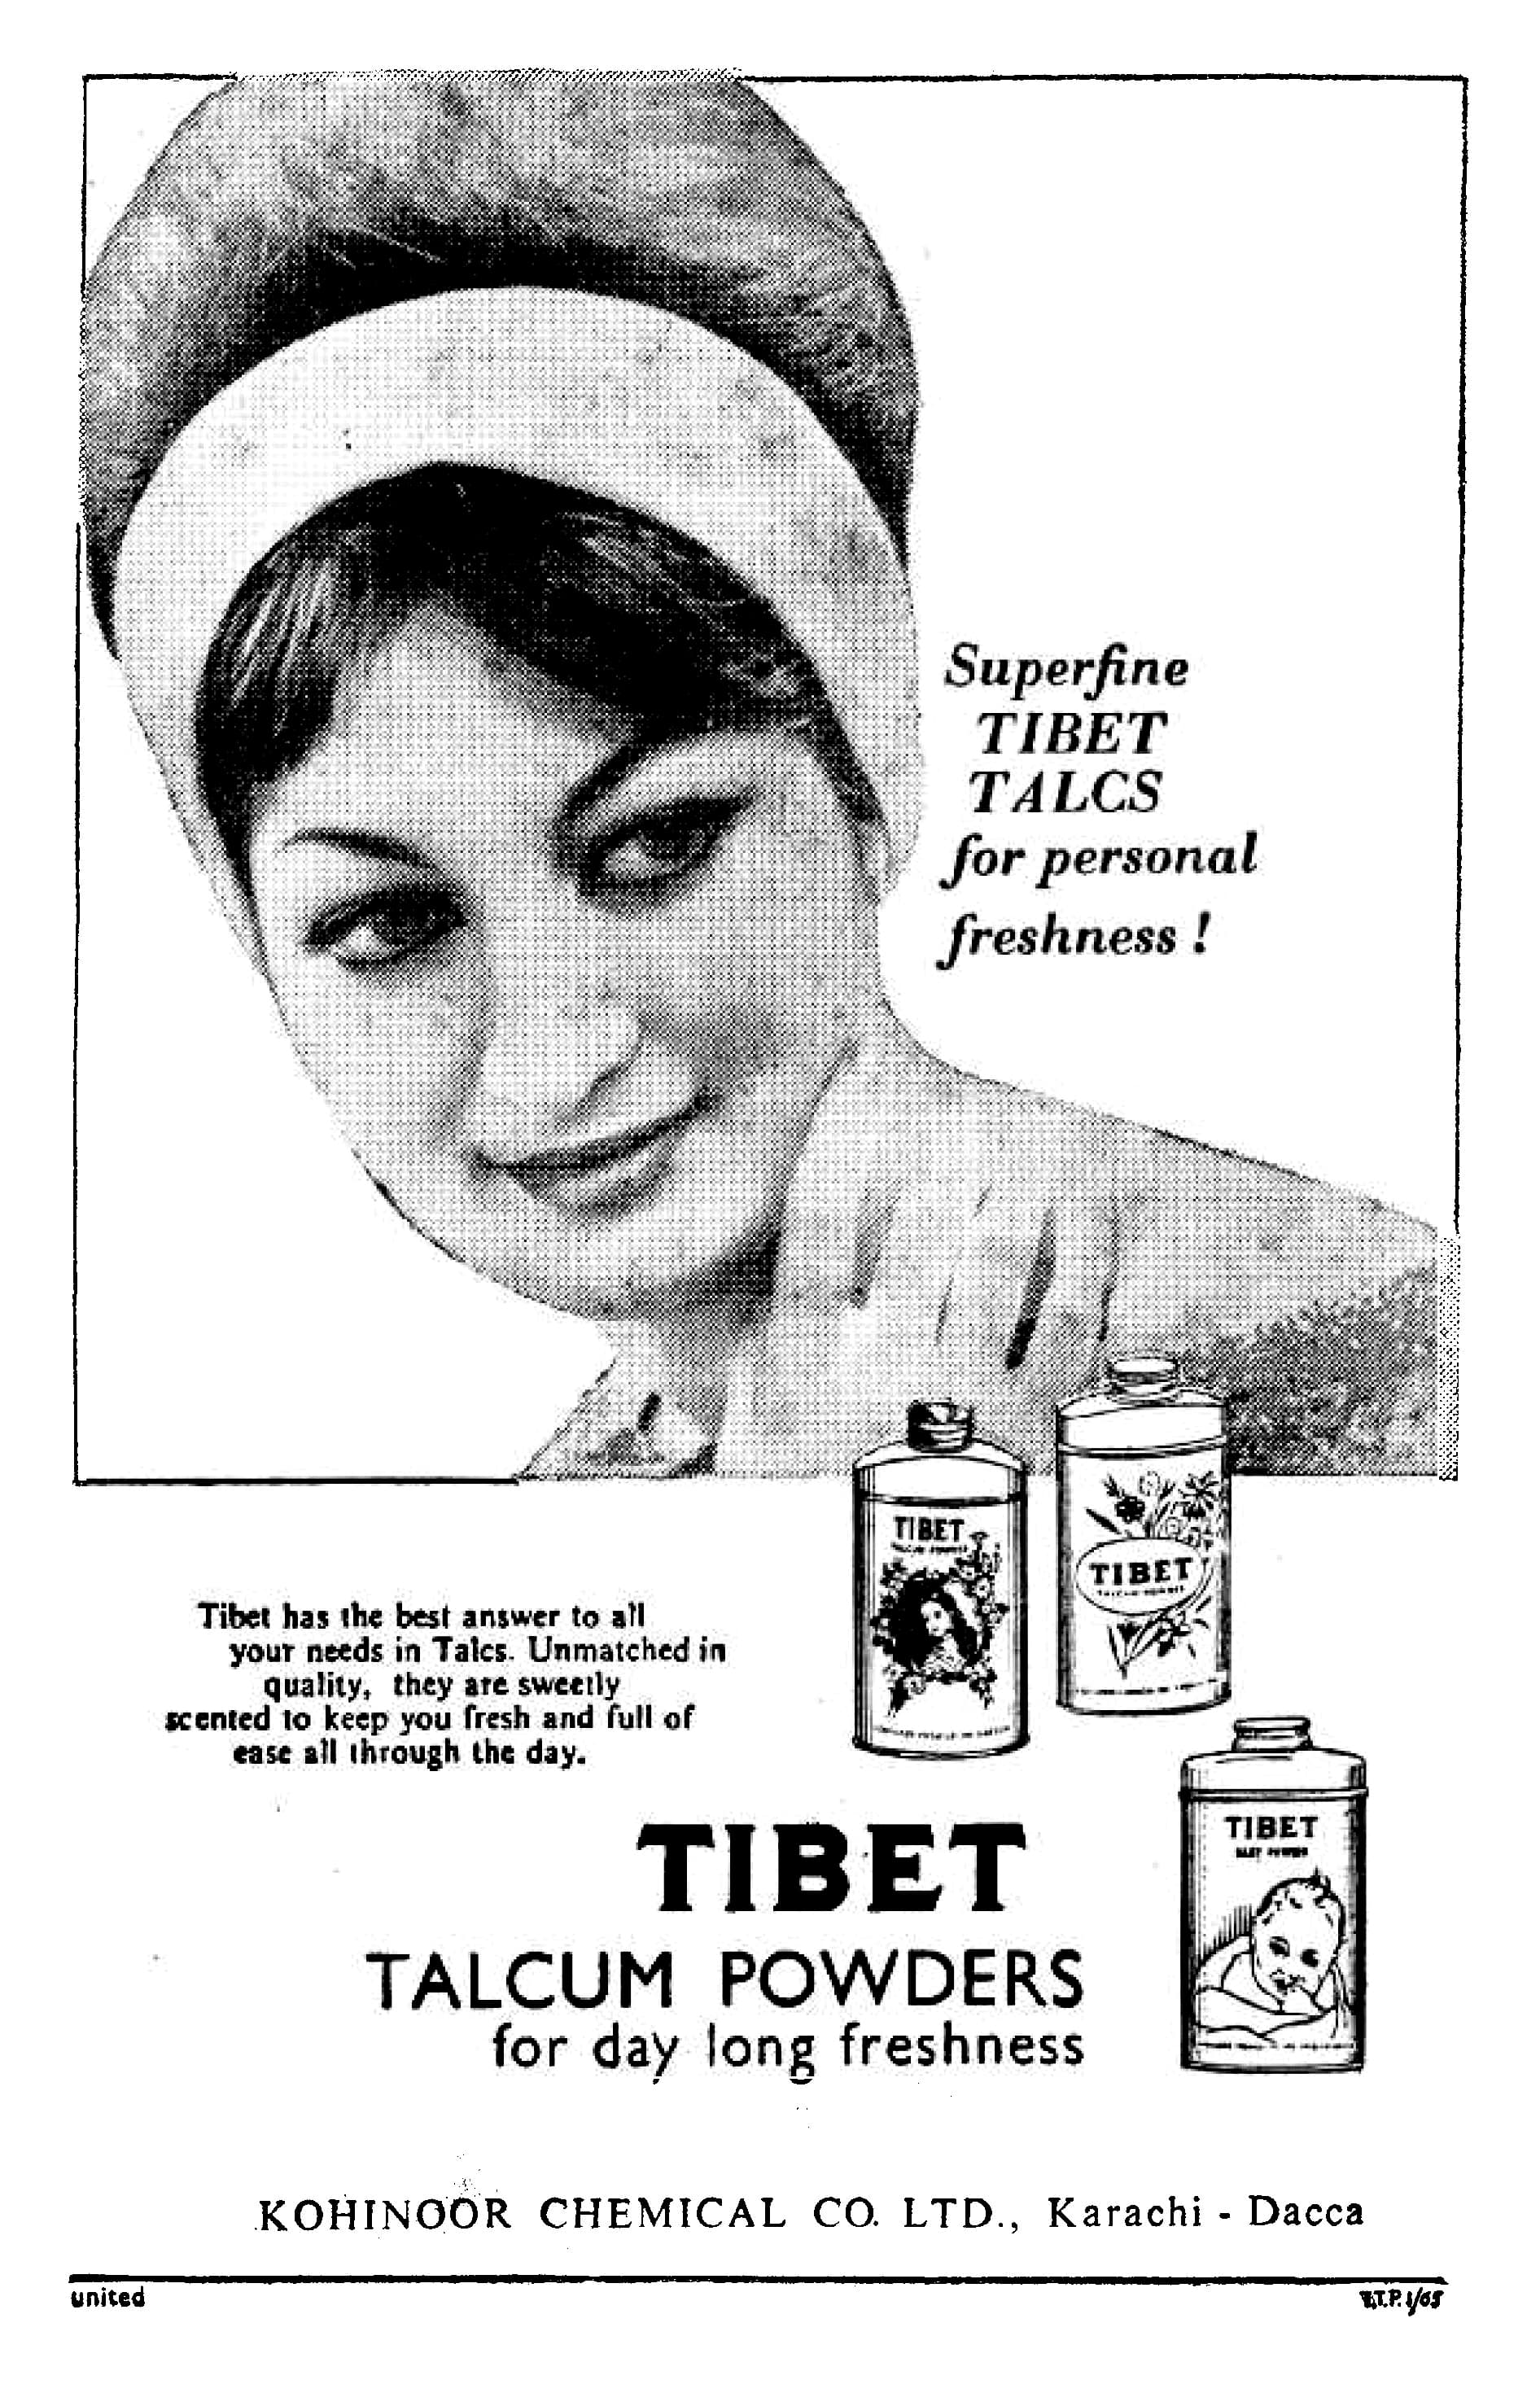 Tibet's ad from 1965